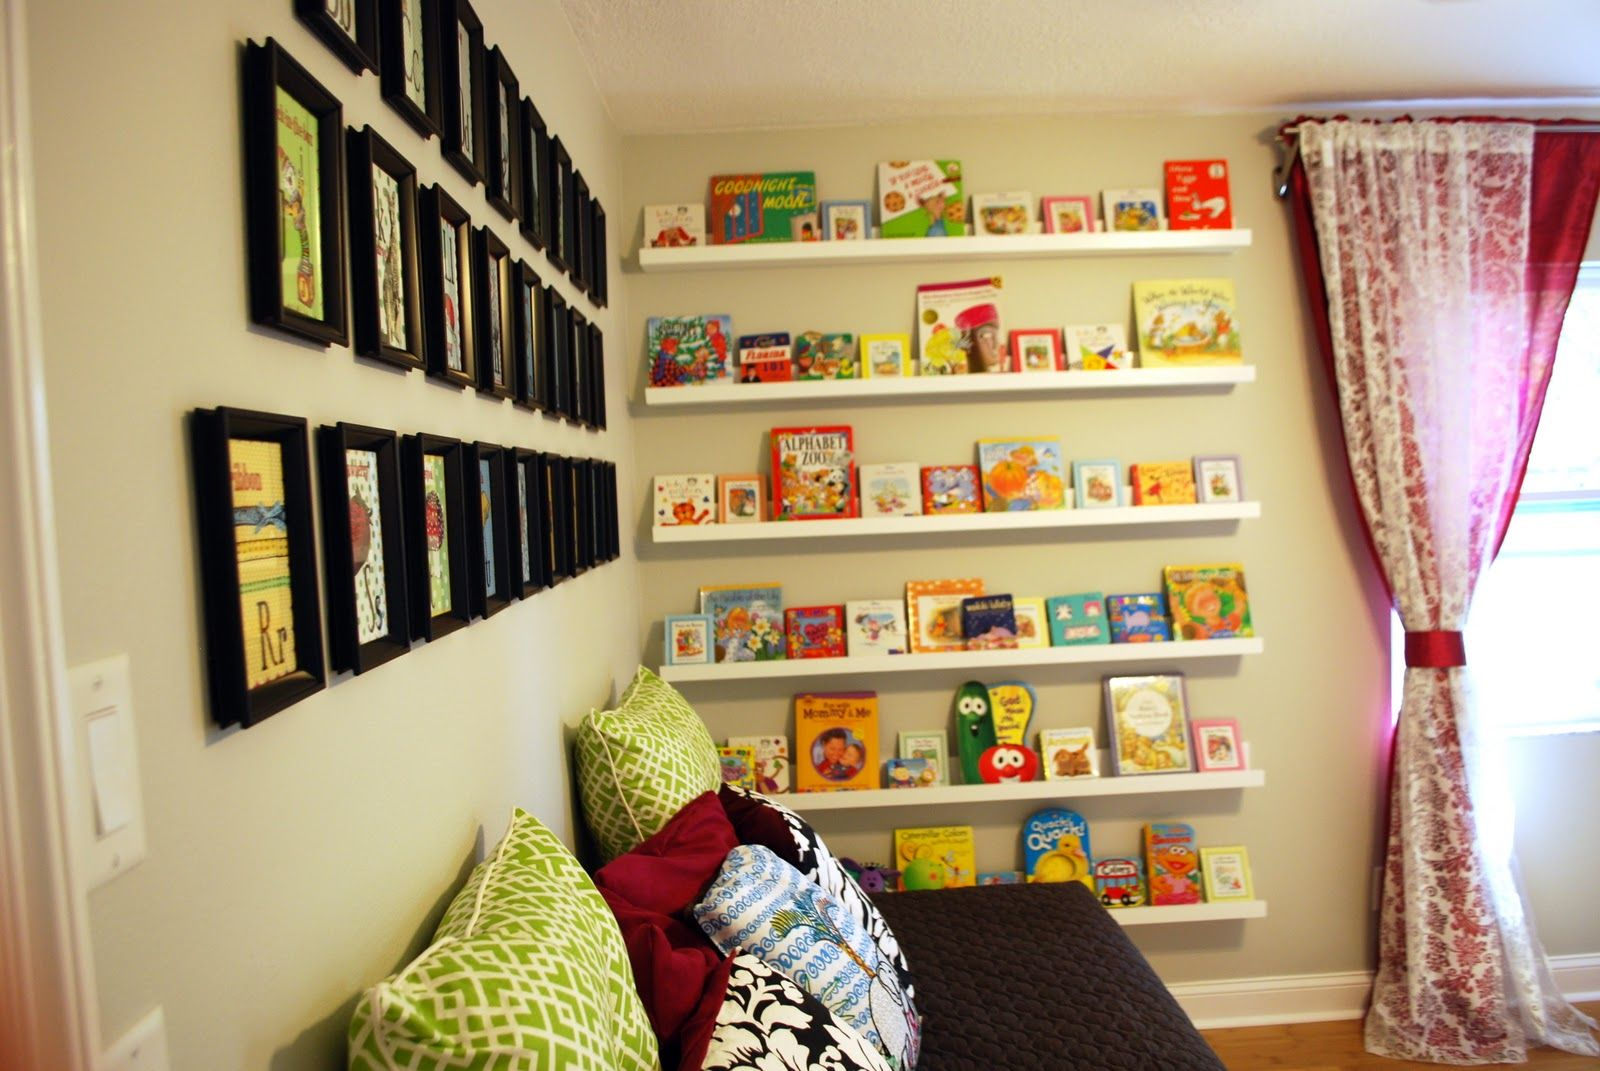 built in baby nursery | Nursery Room Book Shelves from $10 Ledge ...